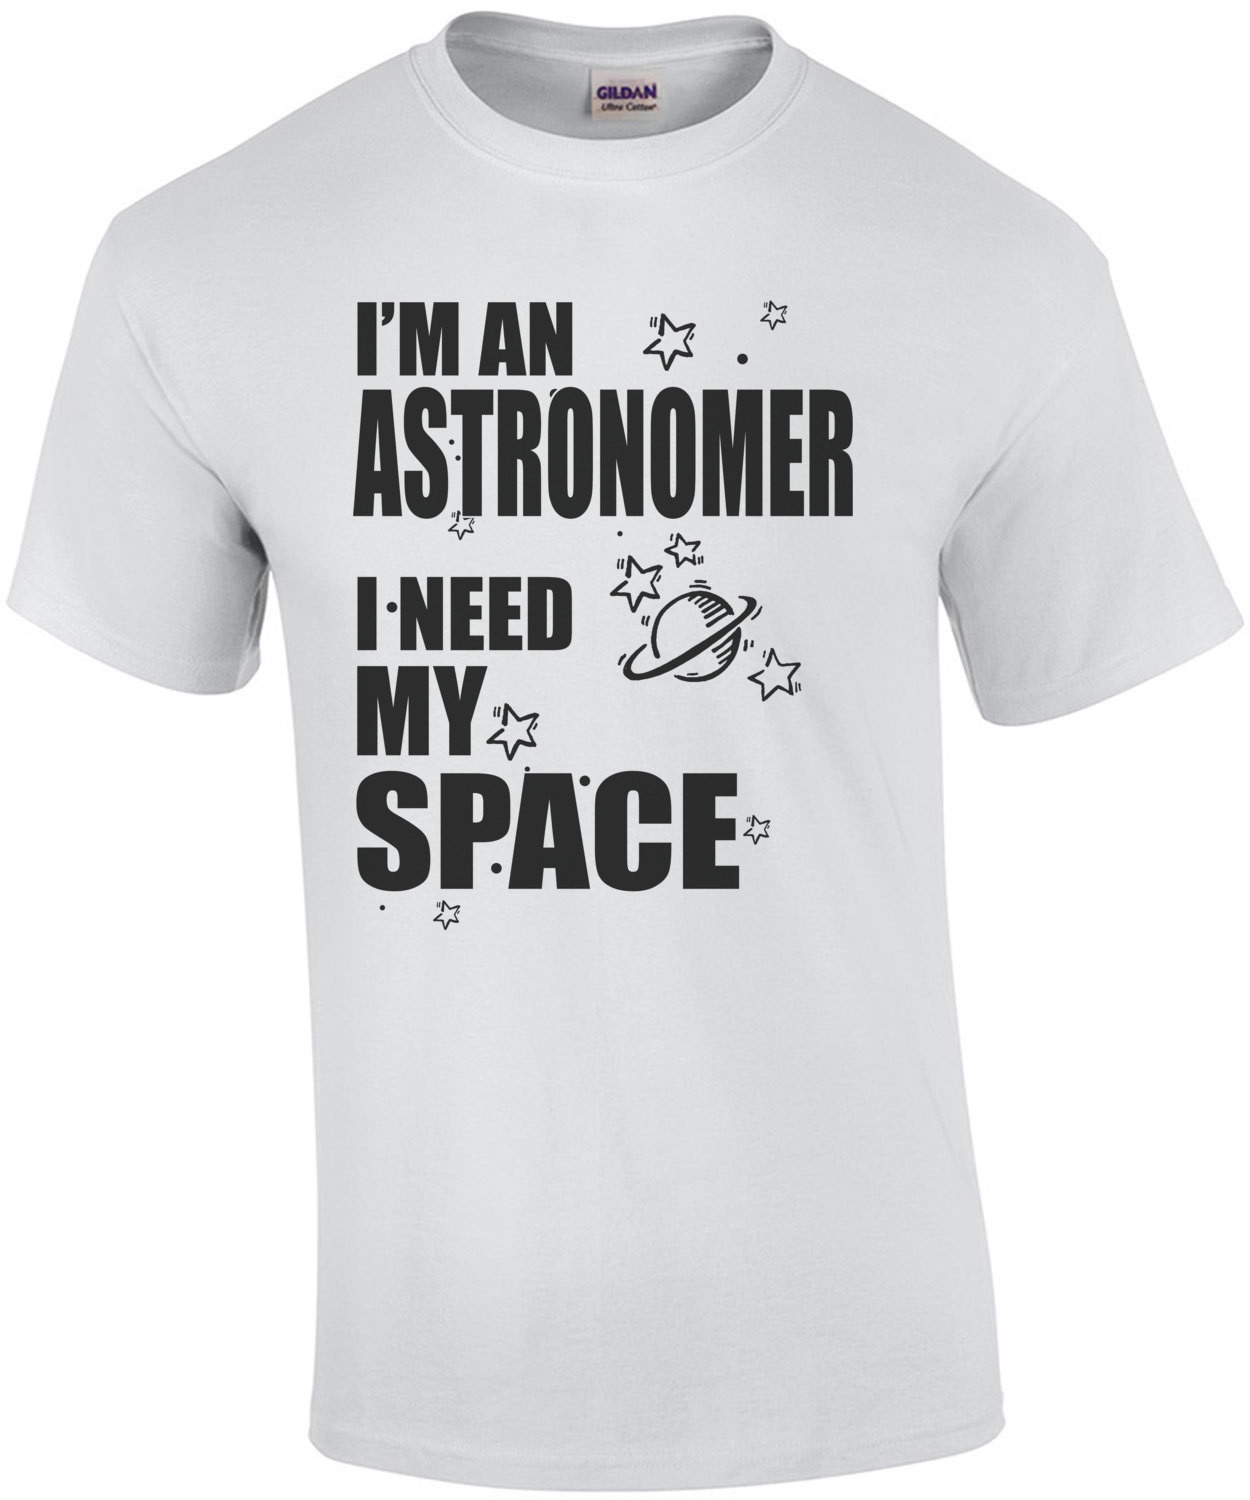 I'm An Astronomer I Need My Space T-Shirt